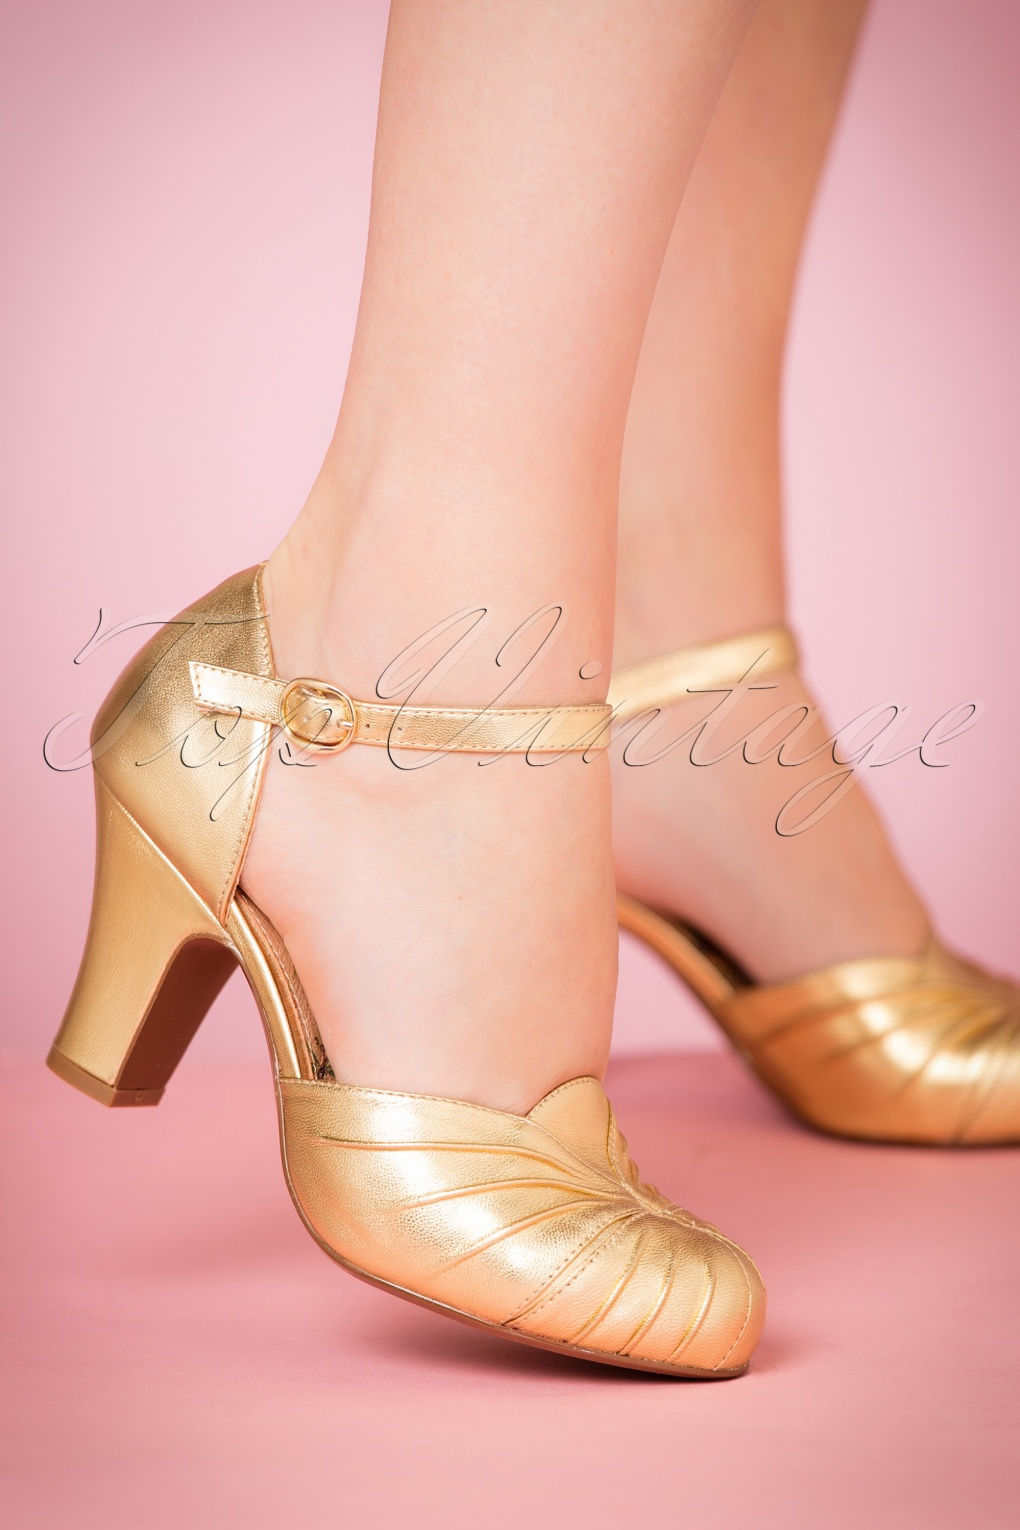 1930s Style Shoes – Art Deco Shoes 40s Amber Mary Jane Pumps in Striking Gold £151.83 AT vintagedancer.com